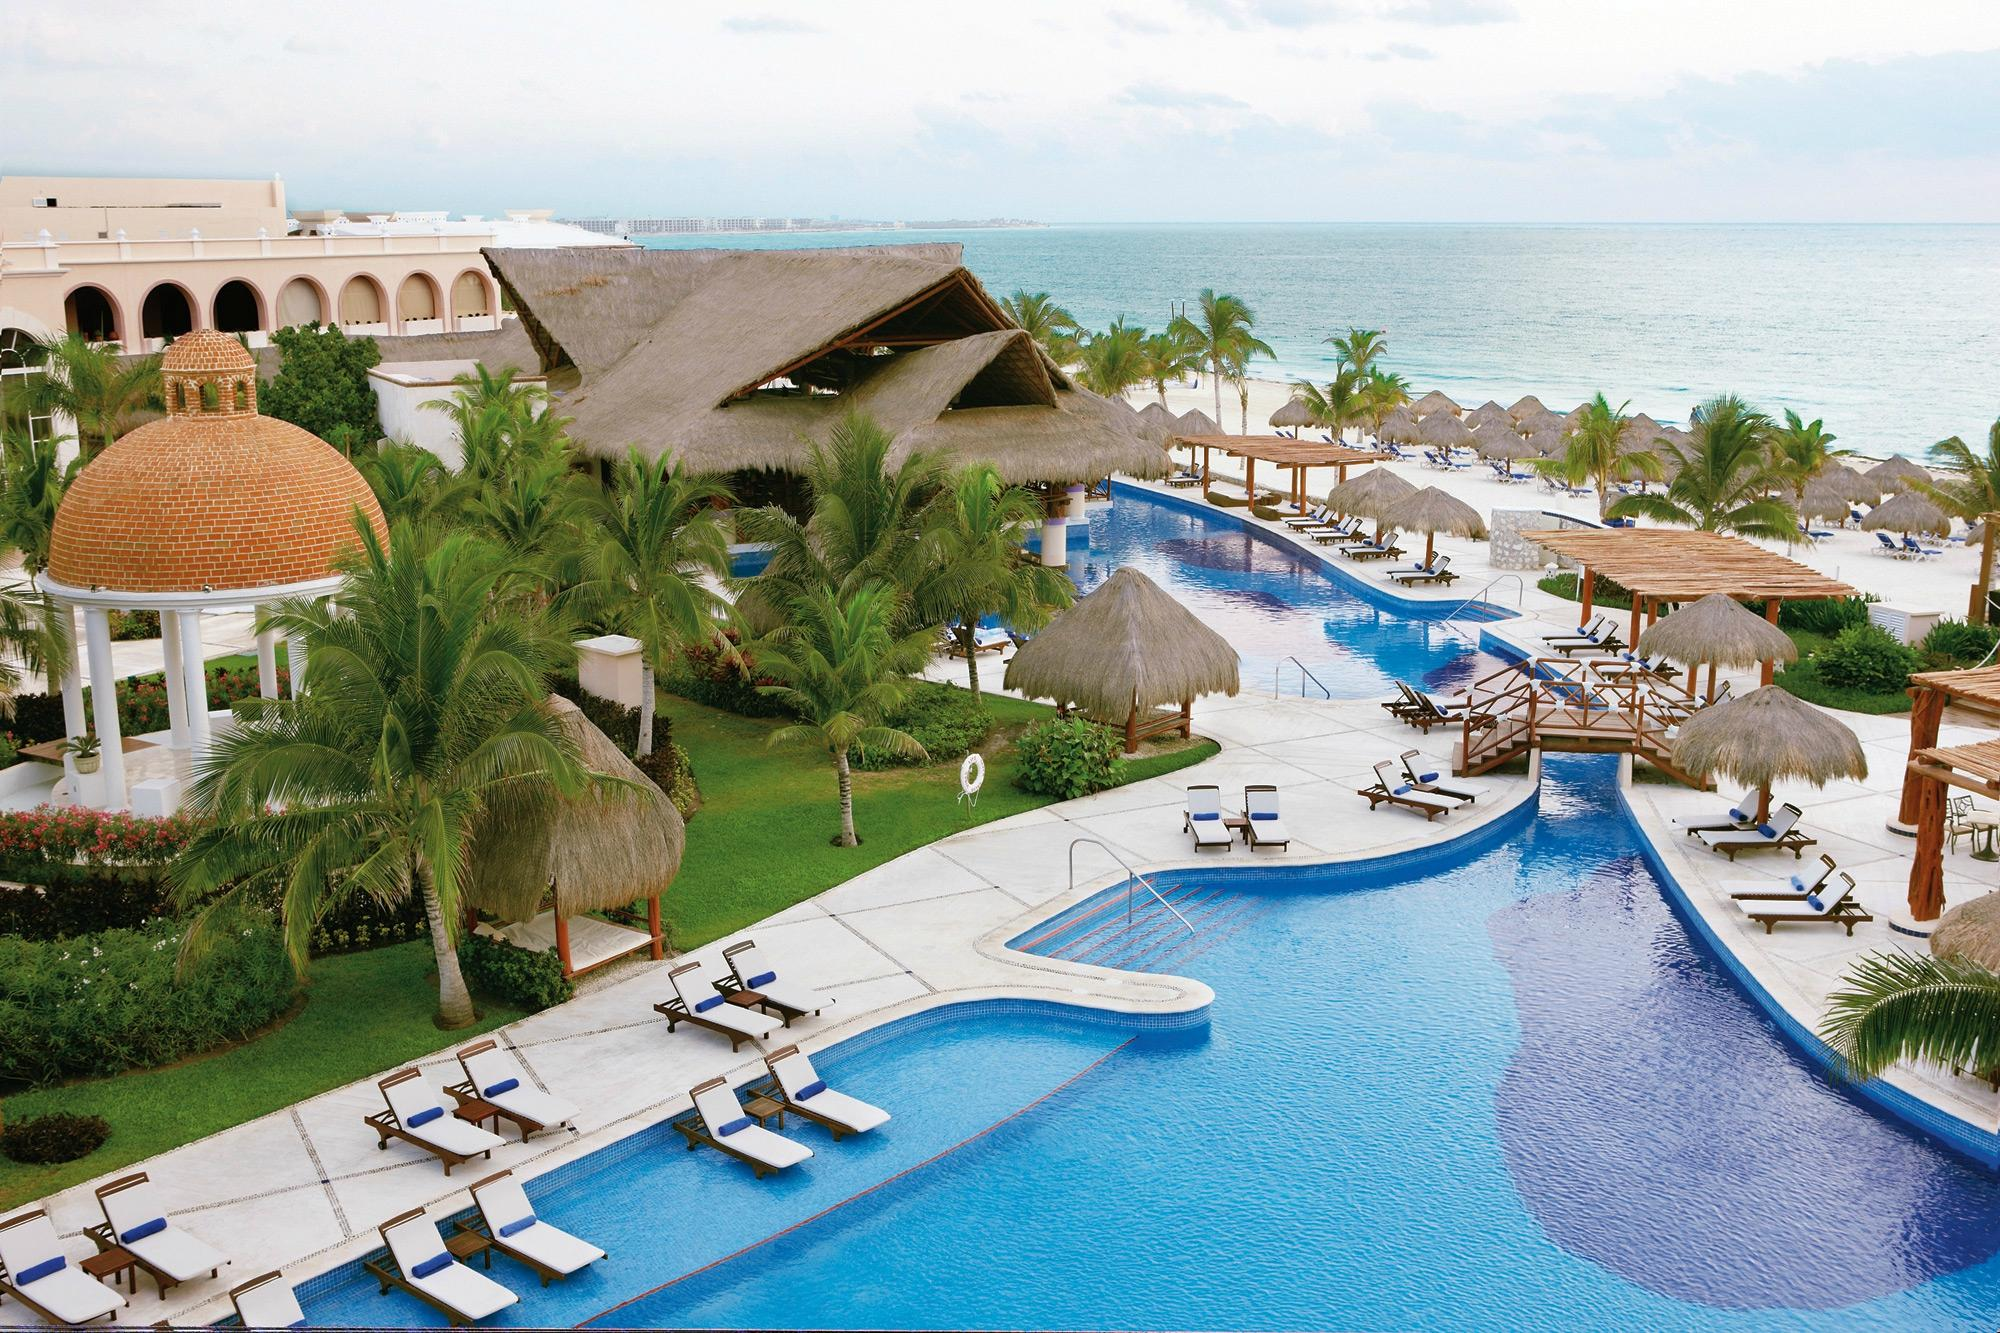 Excellence Riviera Cancun